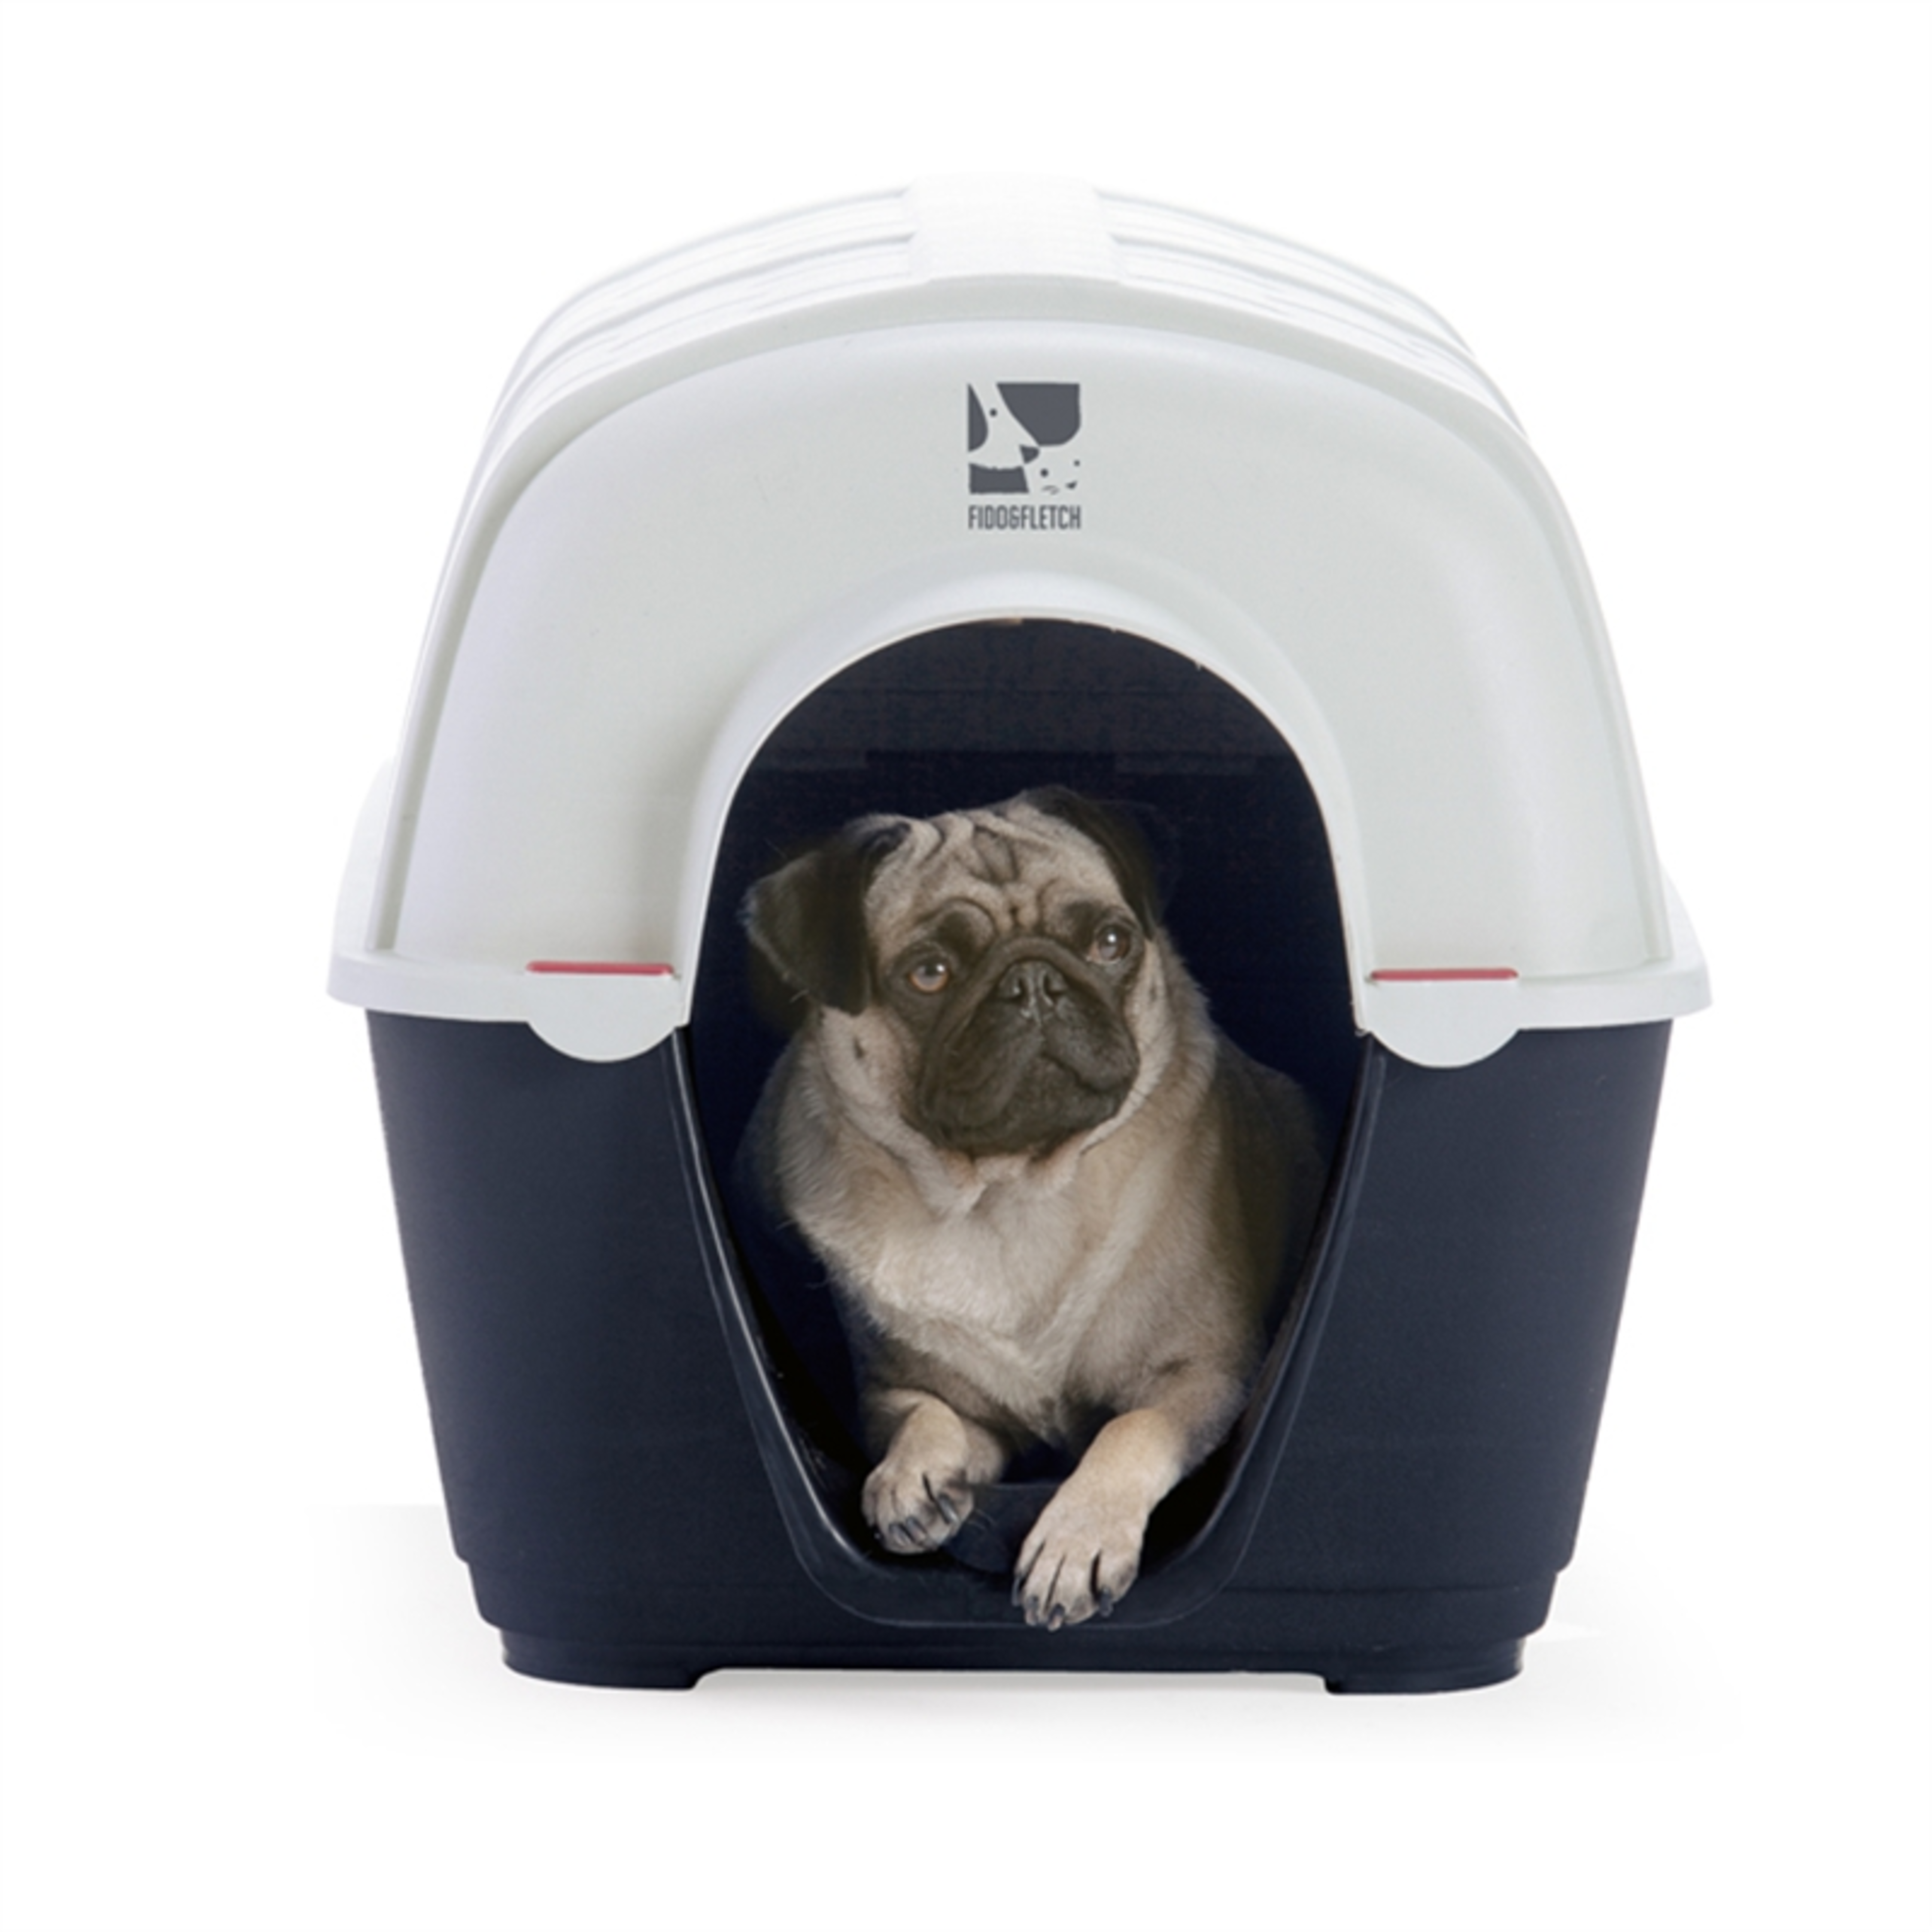 Small dog in portable plastic kennel